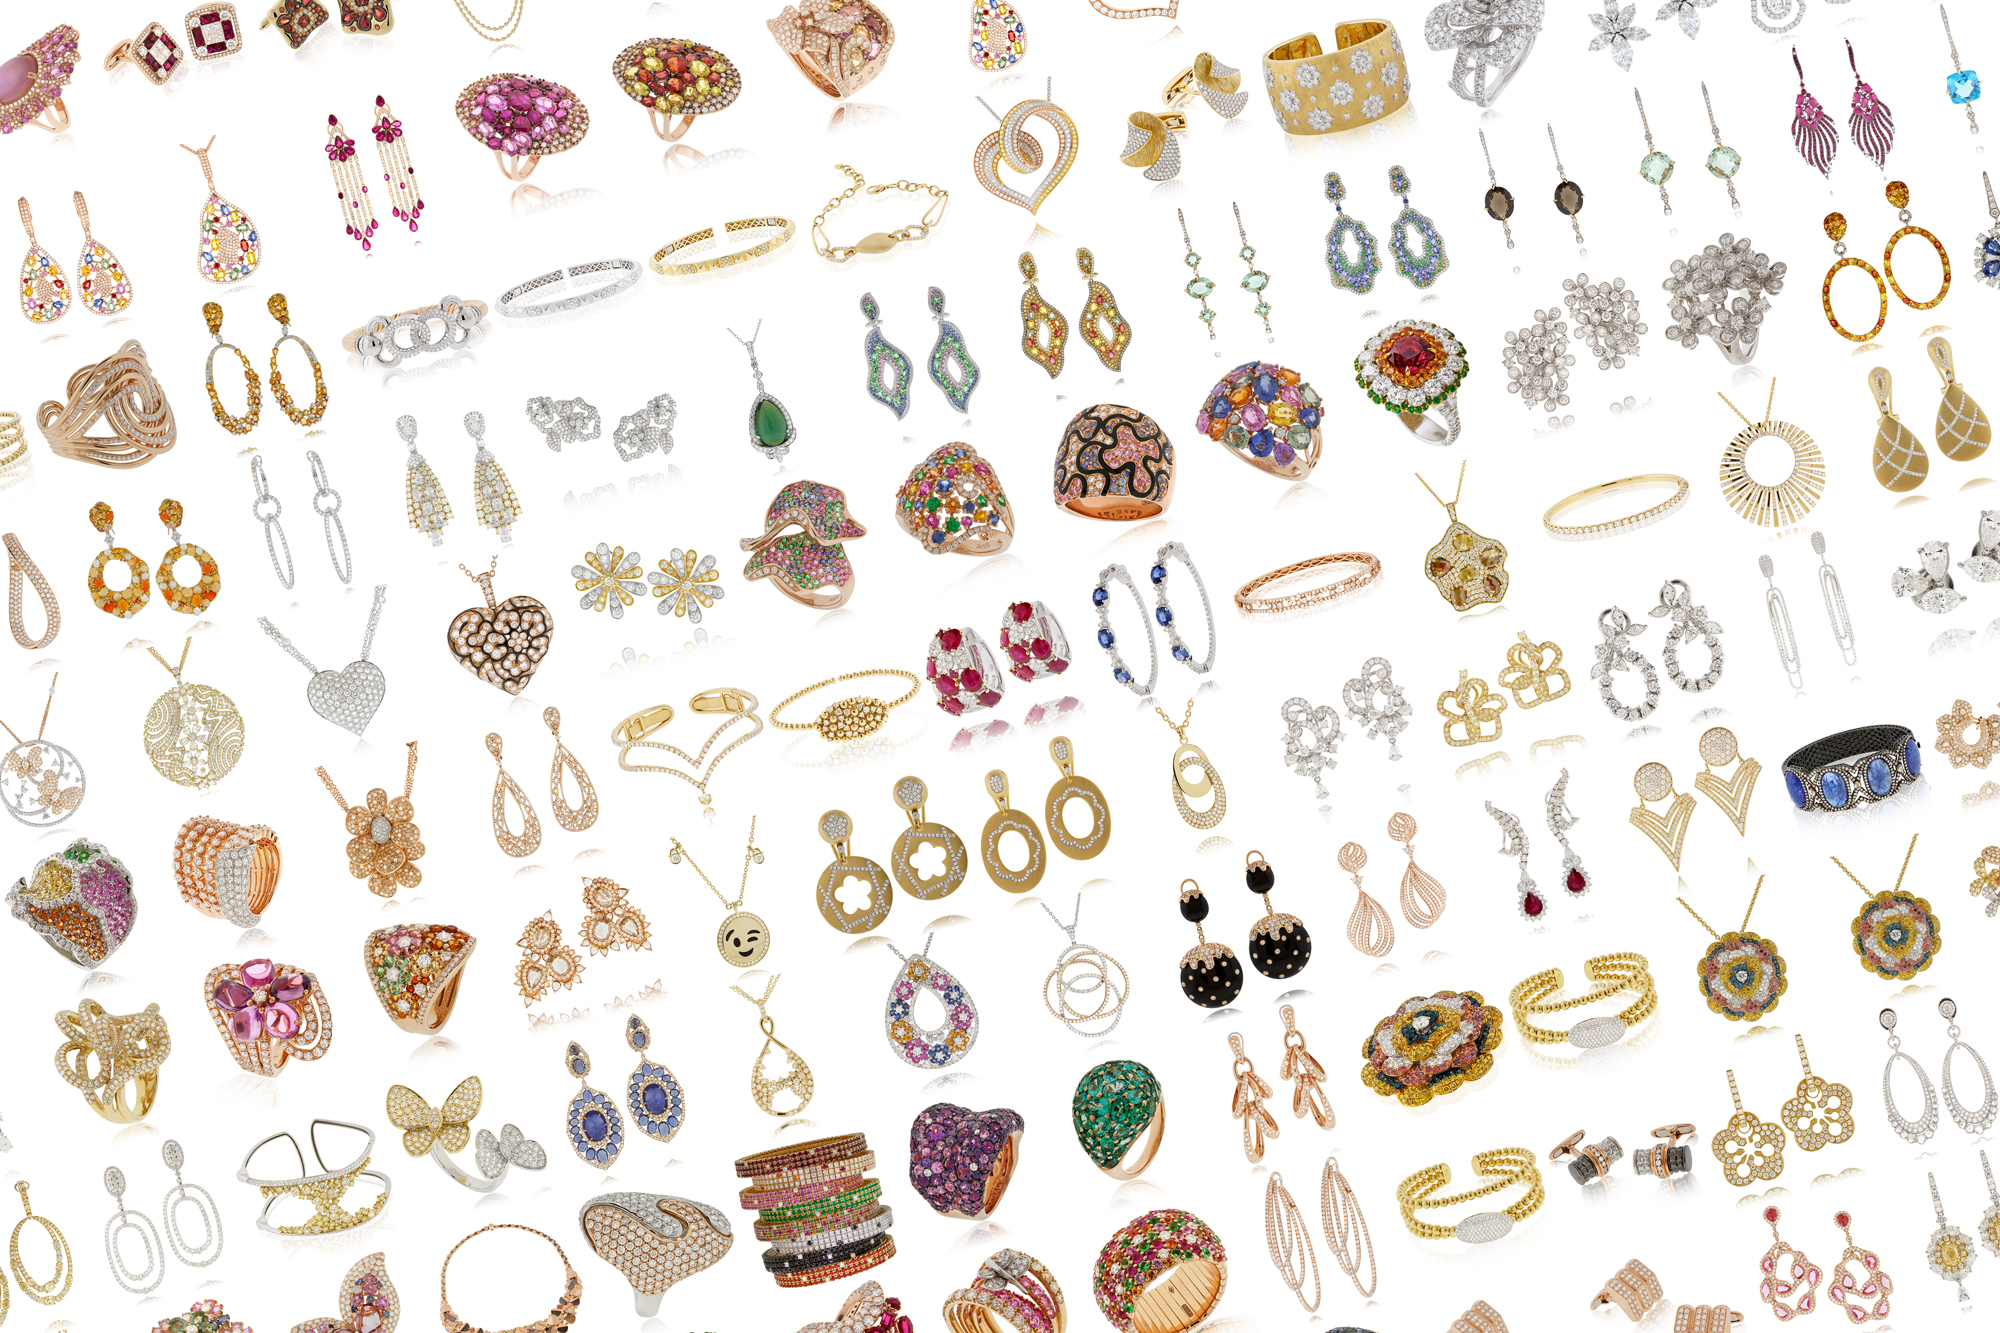 Jewelry Collection.jpg